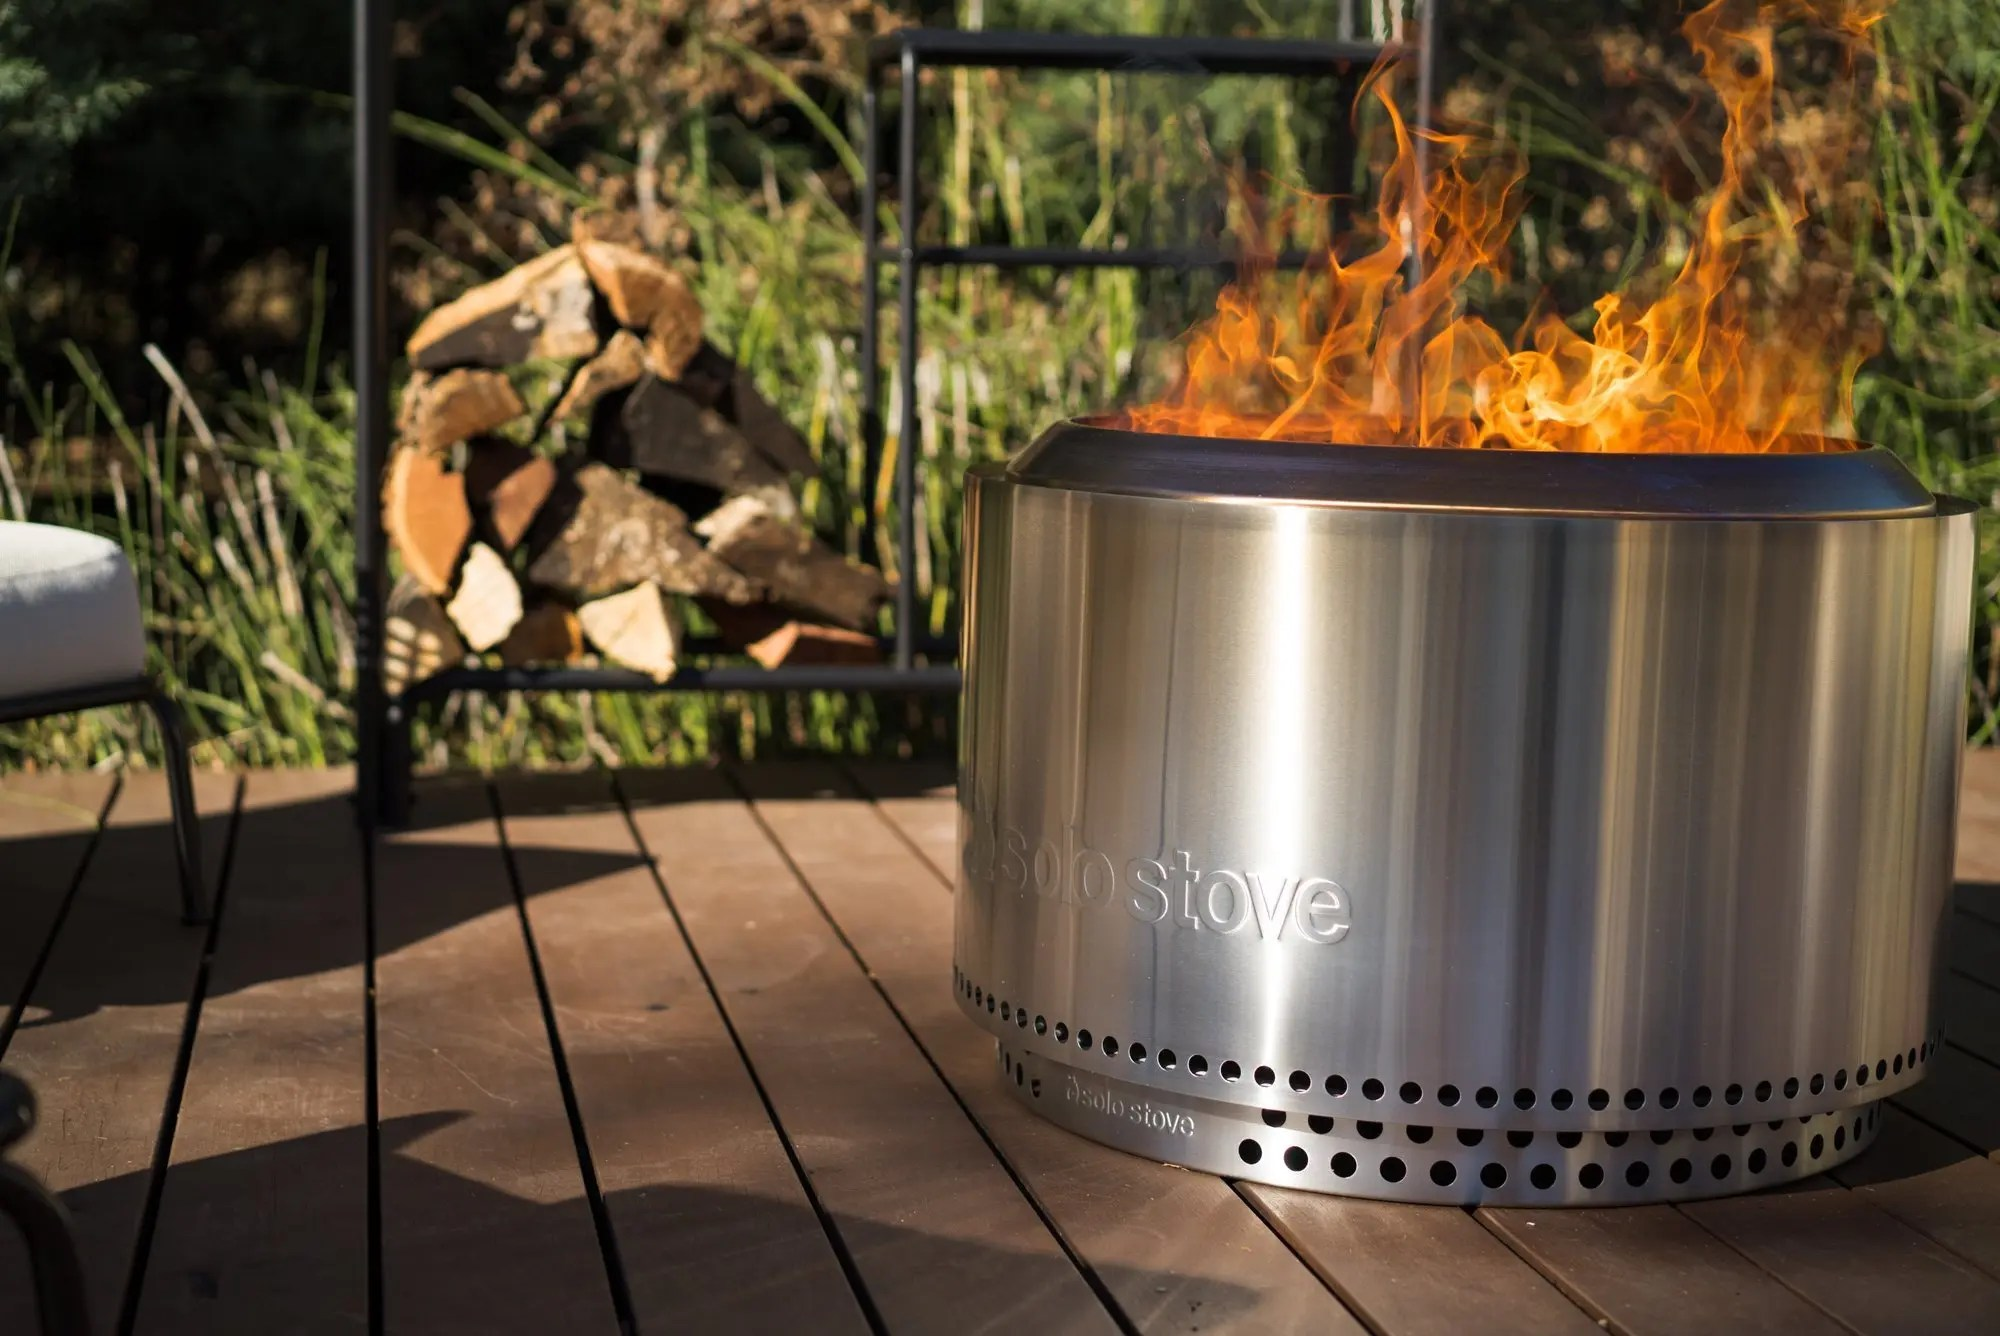 solo stove yukon review, what is solo stove